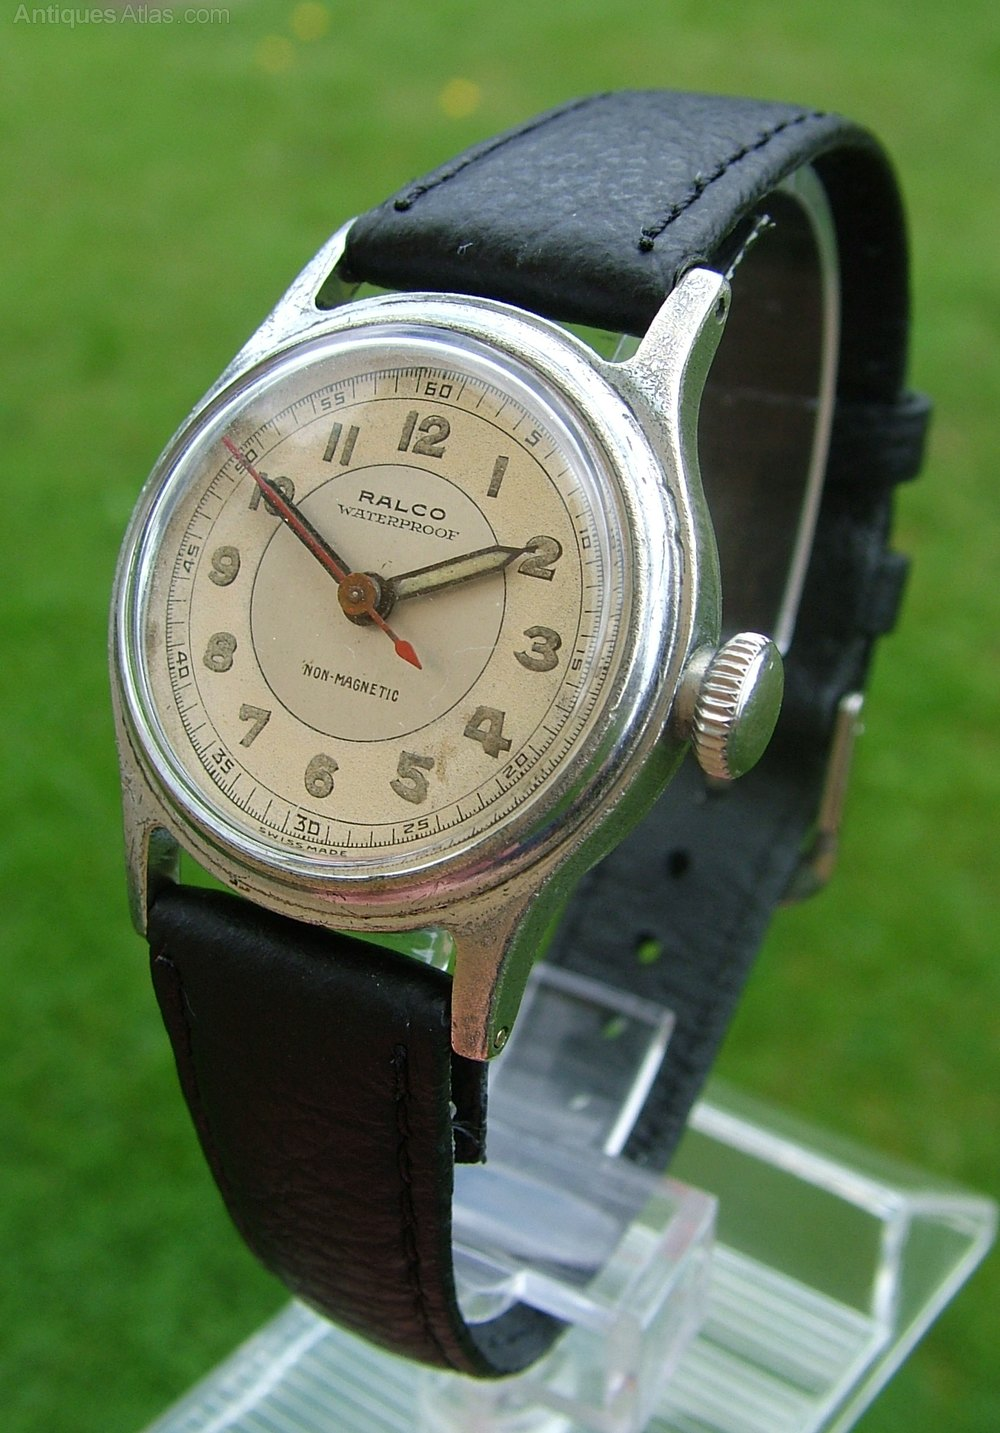 Antiques Atlas  A Midsize 1940s Ralco Wrist Watch